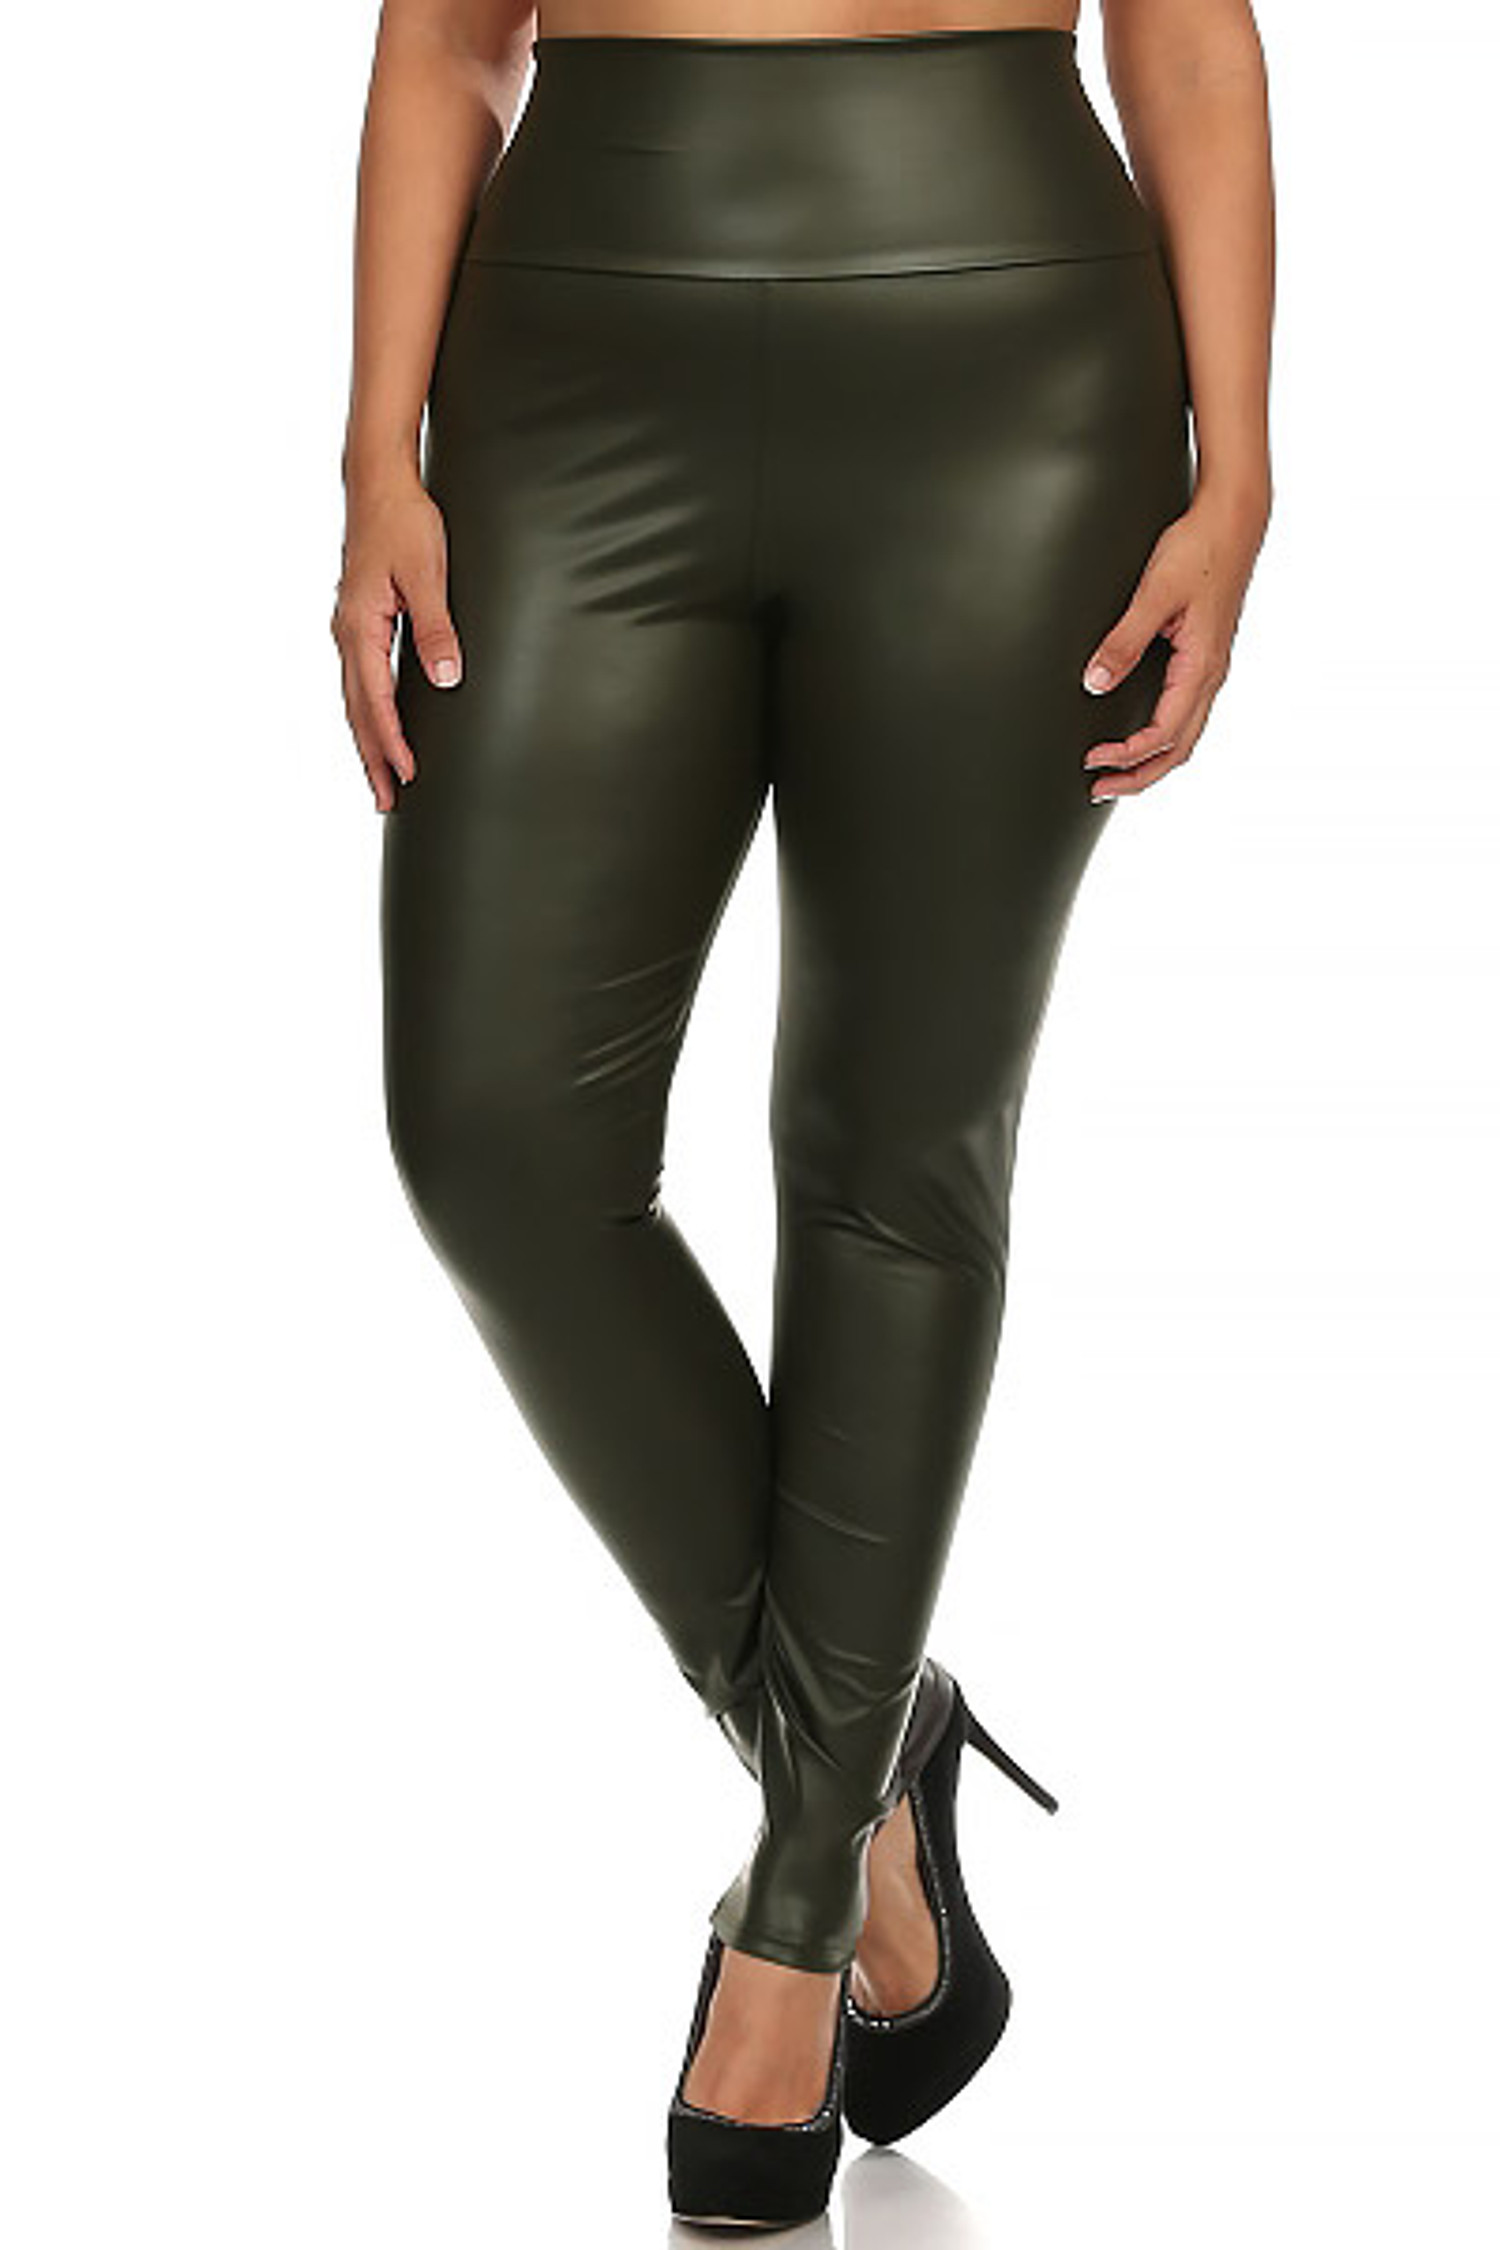 Matte High Waisted Olive Faux Leather Plus Size Leggings